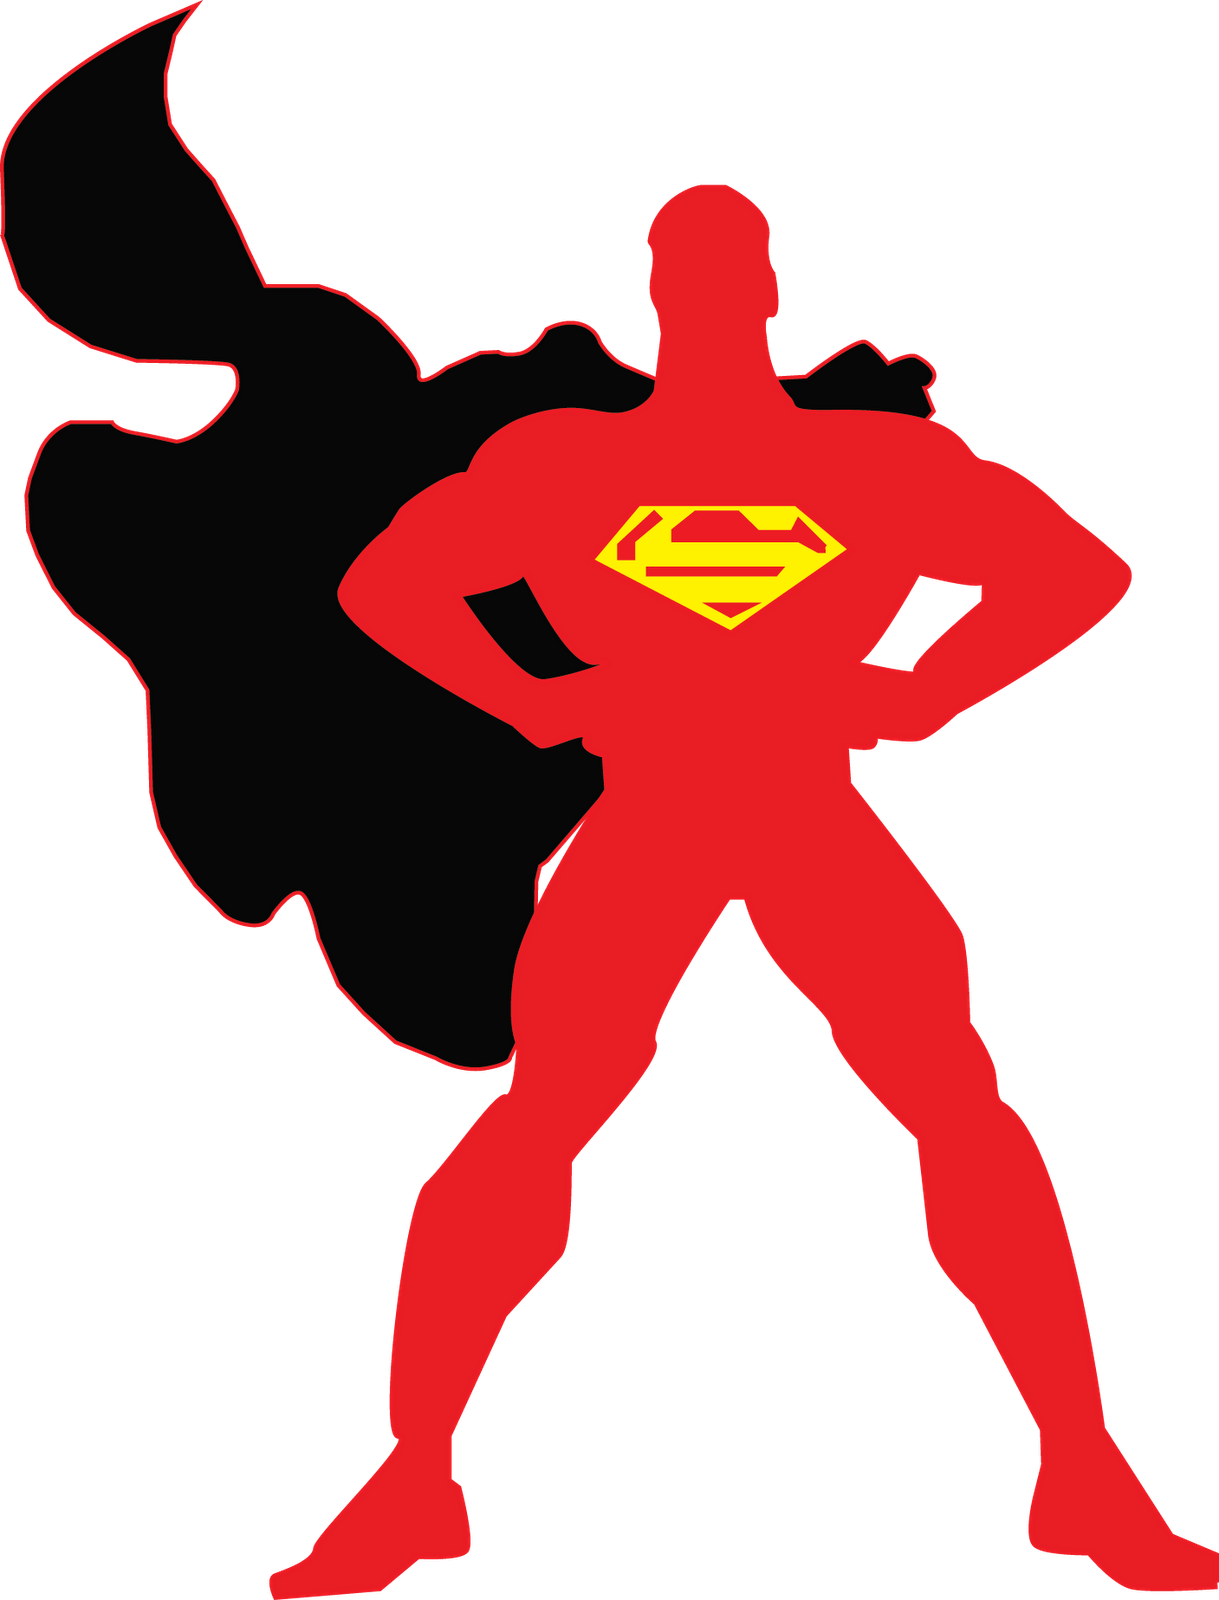 Superman Logo Outline - ClipArt Best - ClipArt Best